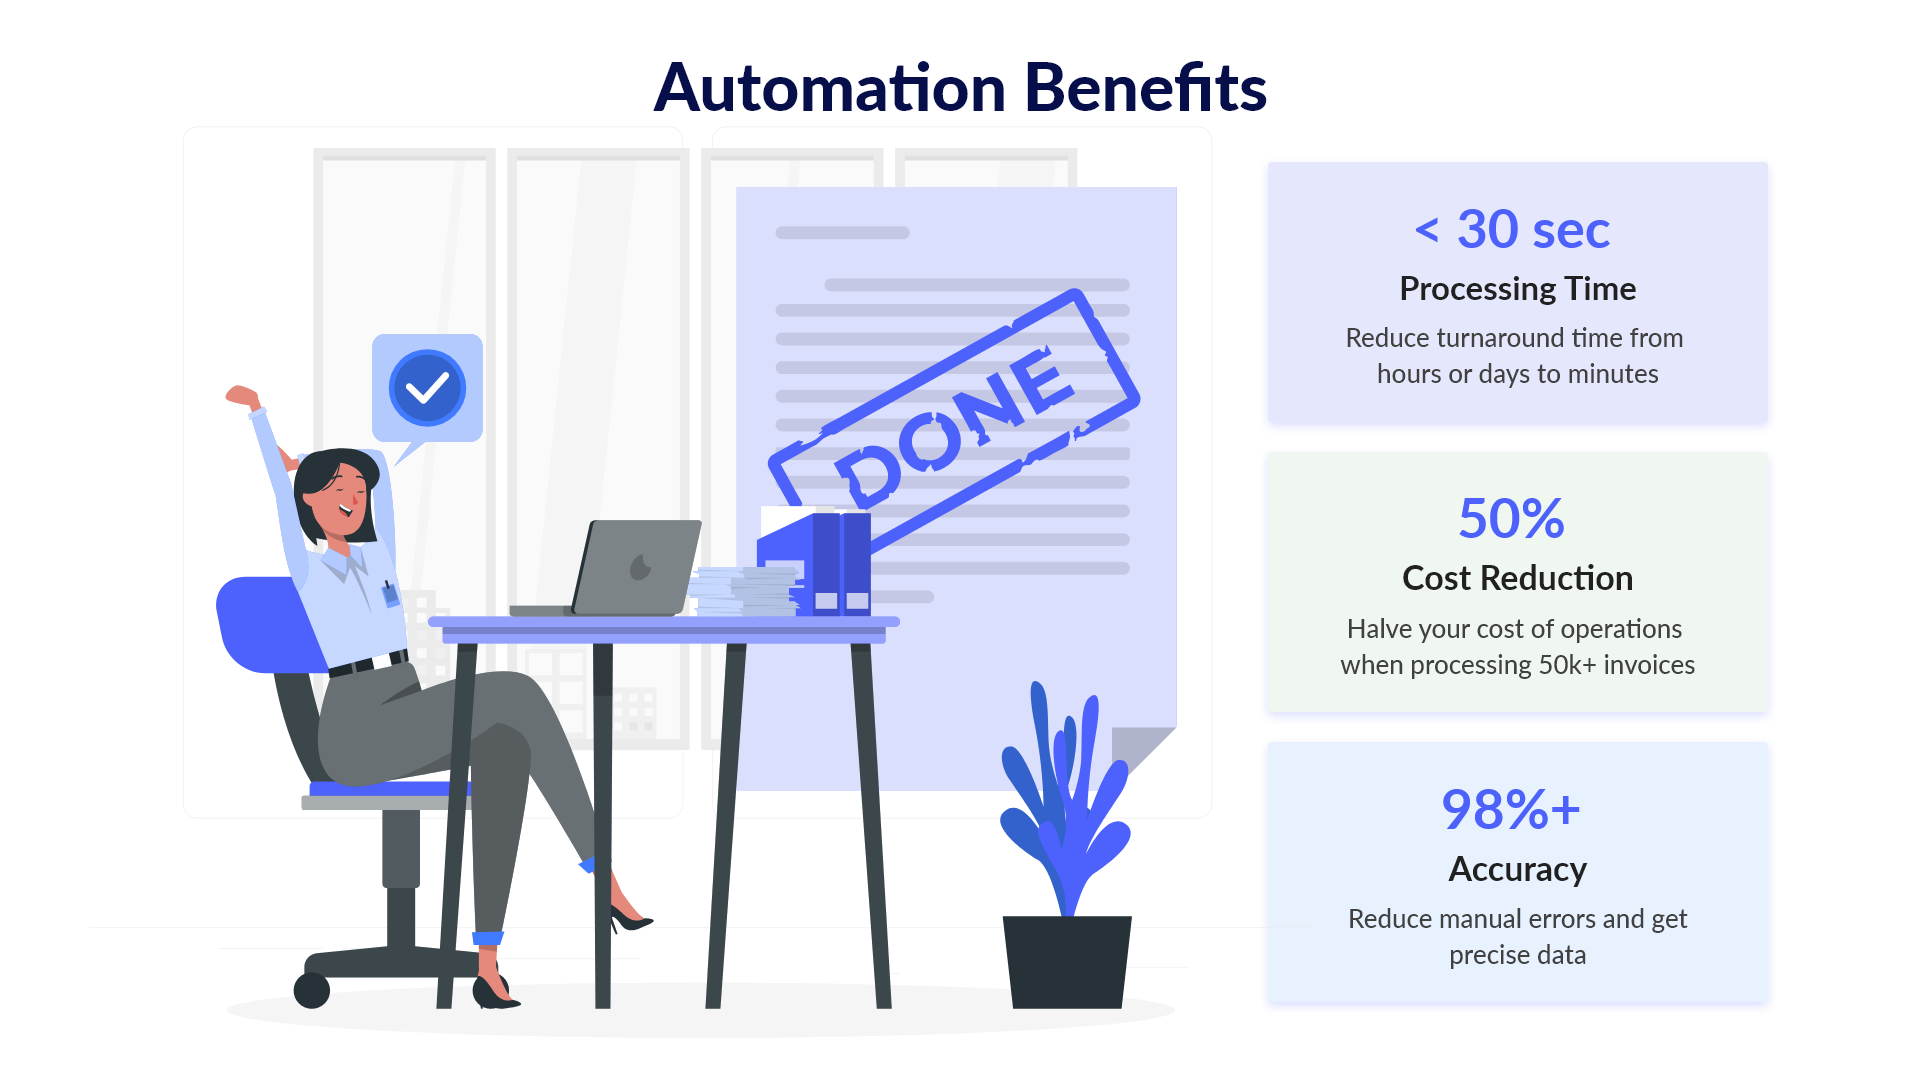 Automation Benefits